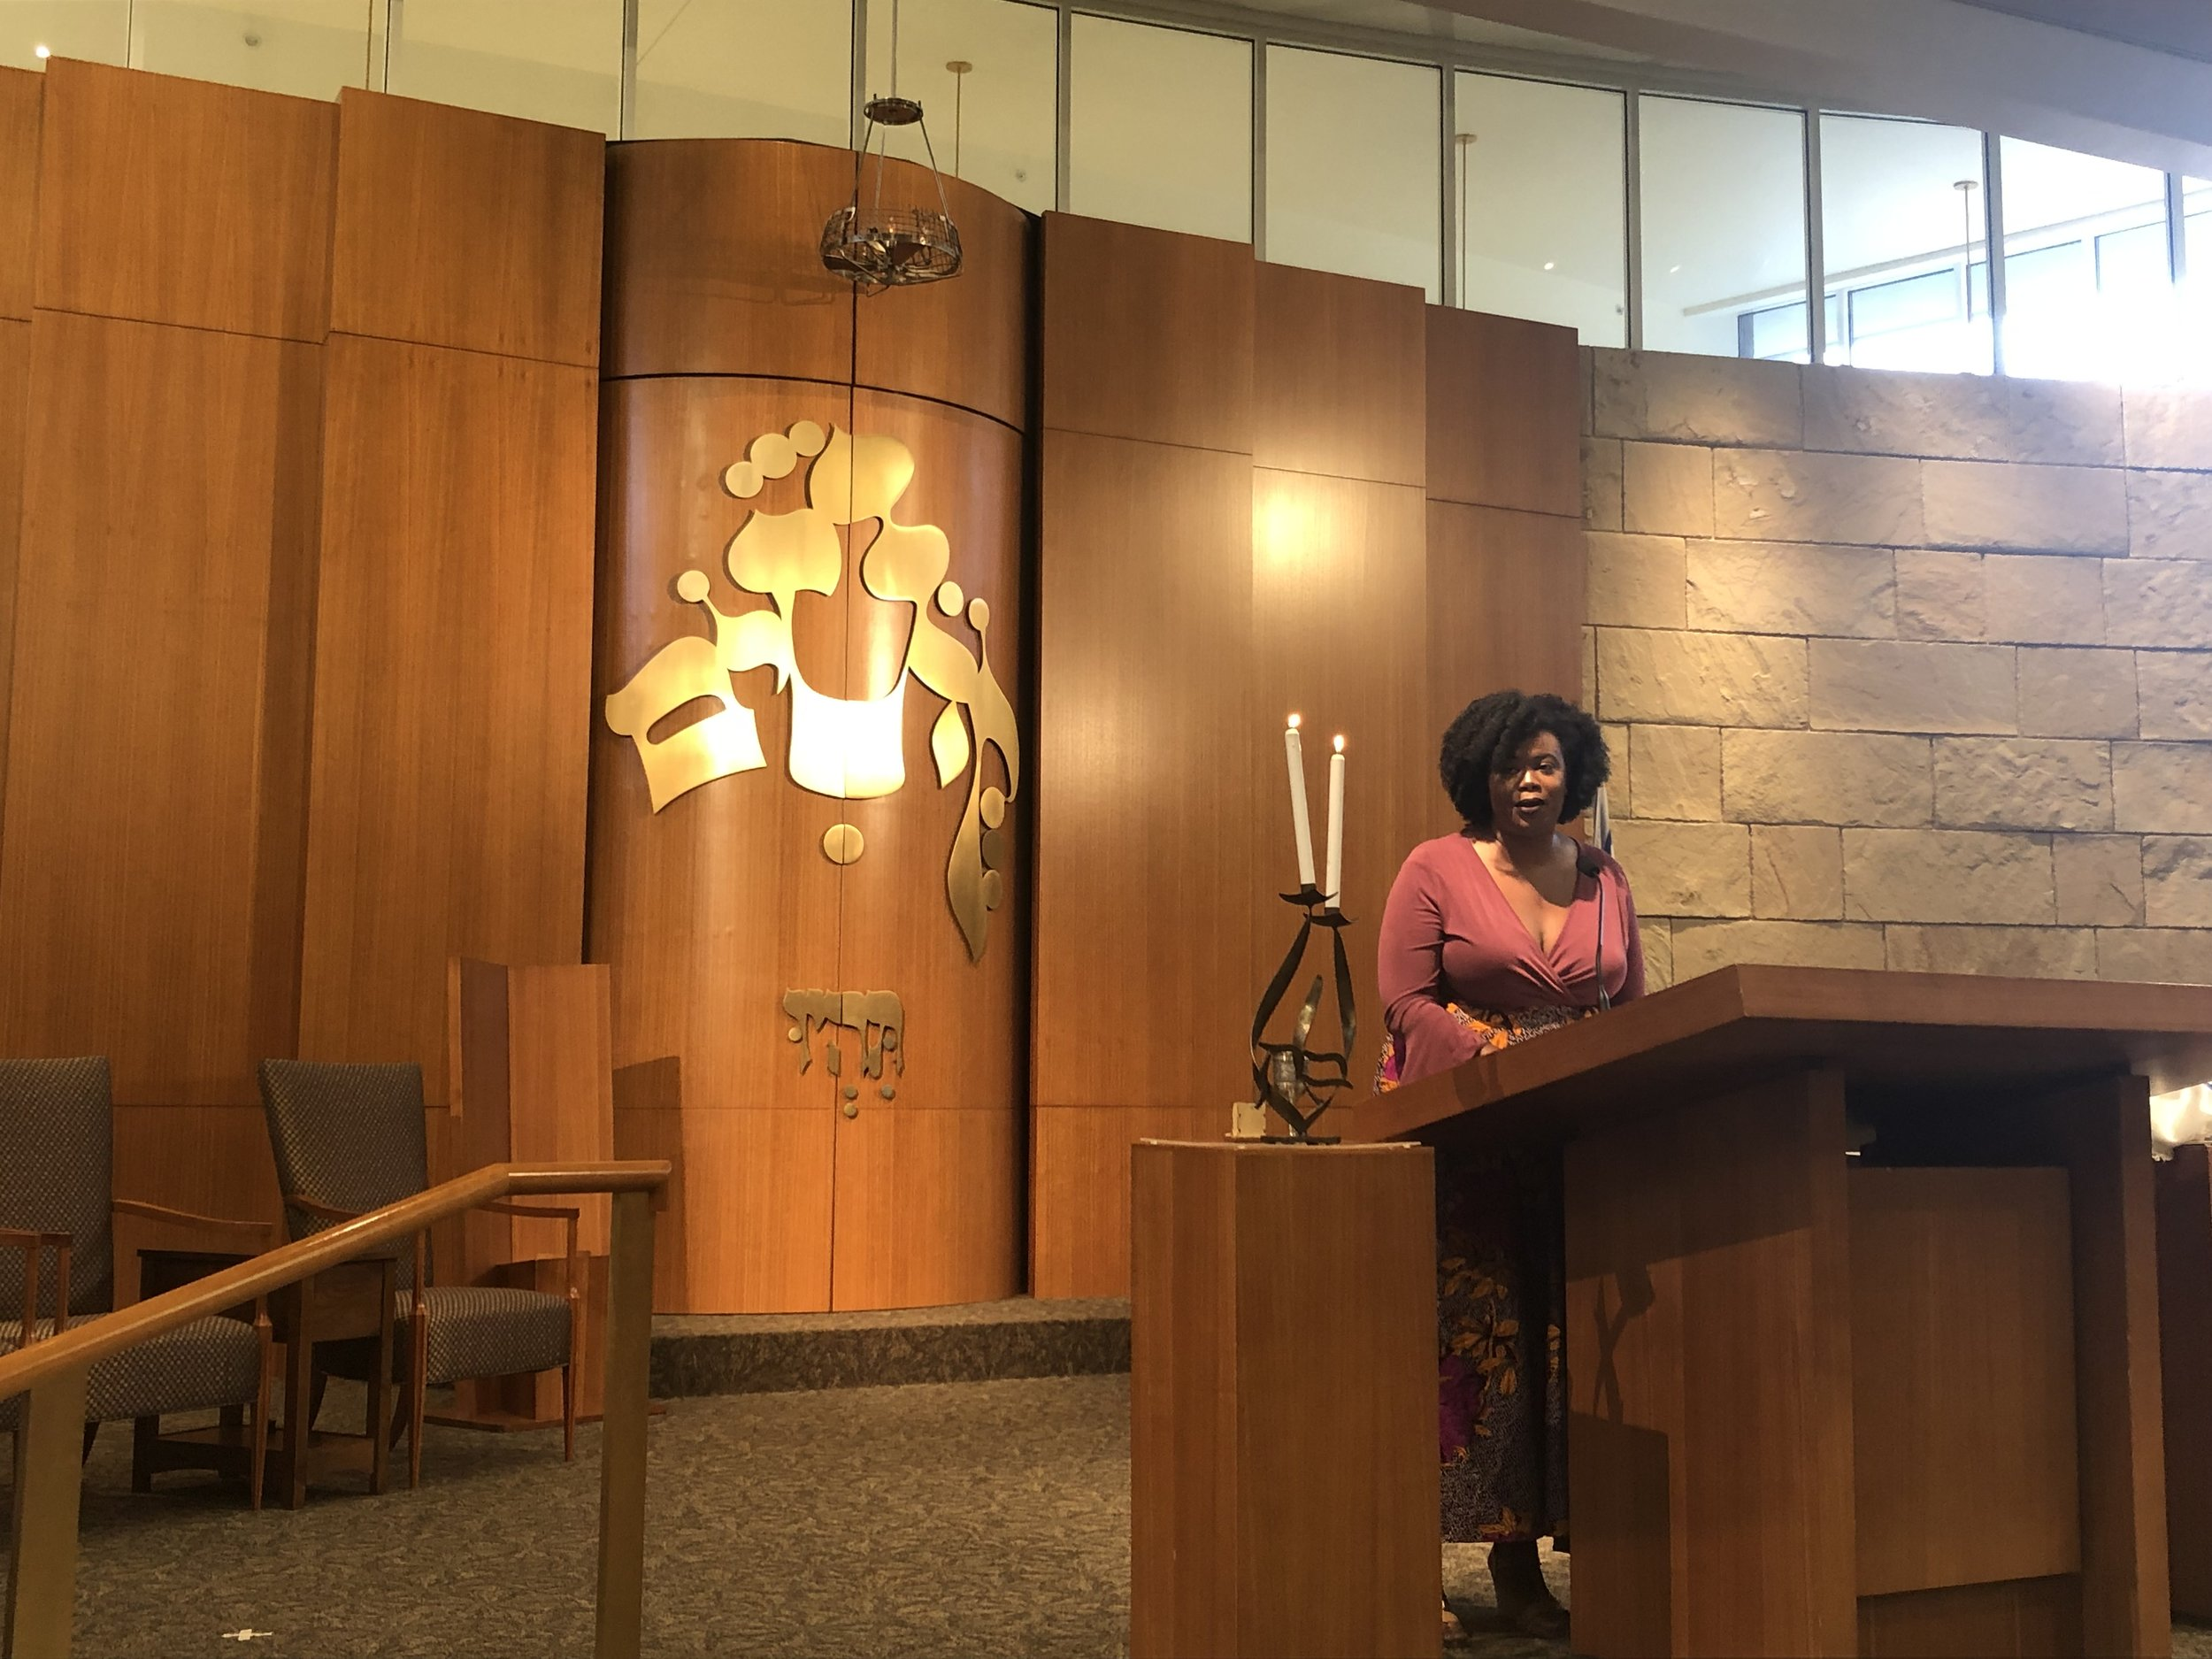 Tolerance isn't Enough: If You Are an Ally It's Time to Affirm - I was honoroed to be the guest speaker at Indianapolis Hebrew Congregation's Pride Shabbat. Here's the full speech: